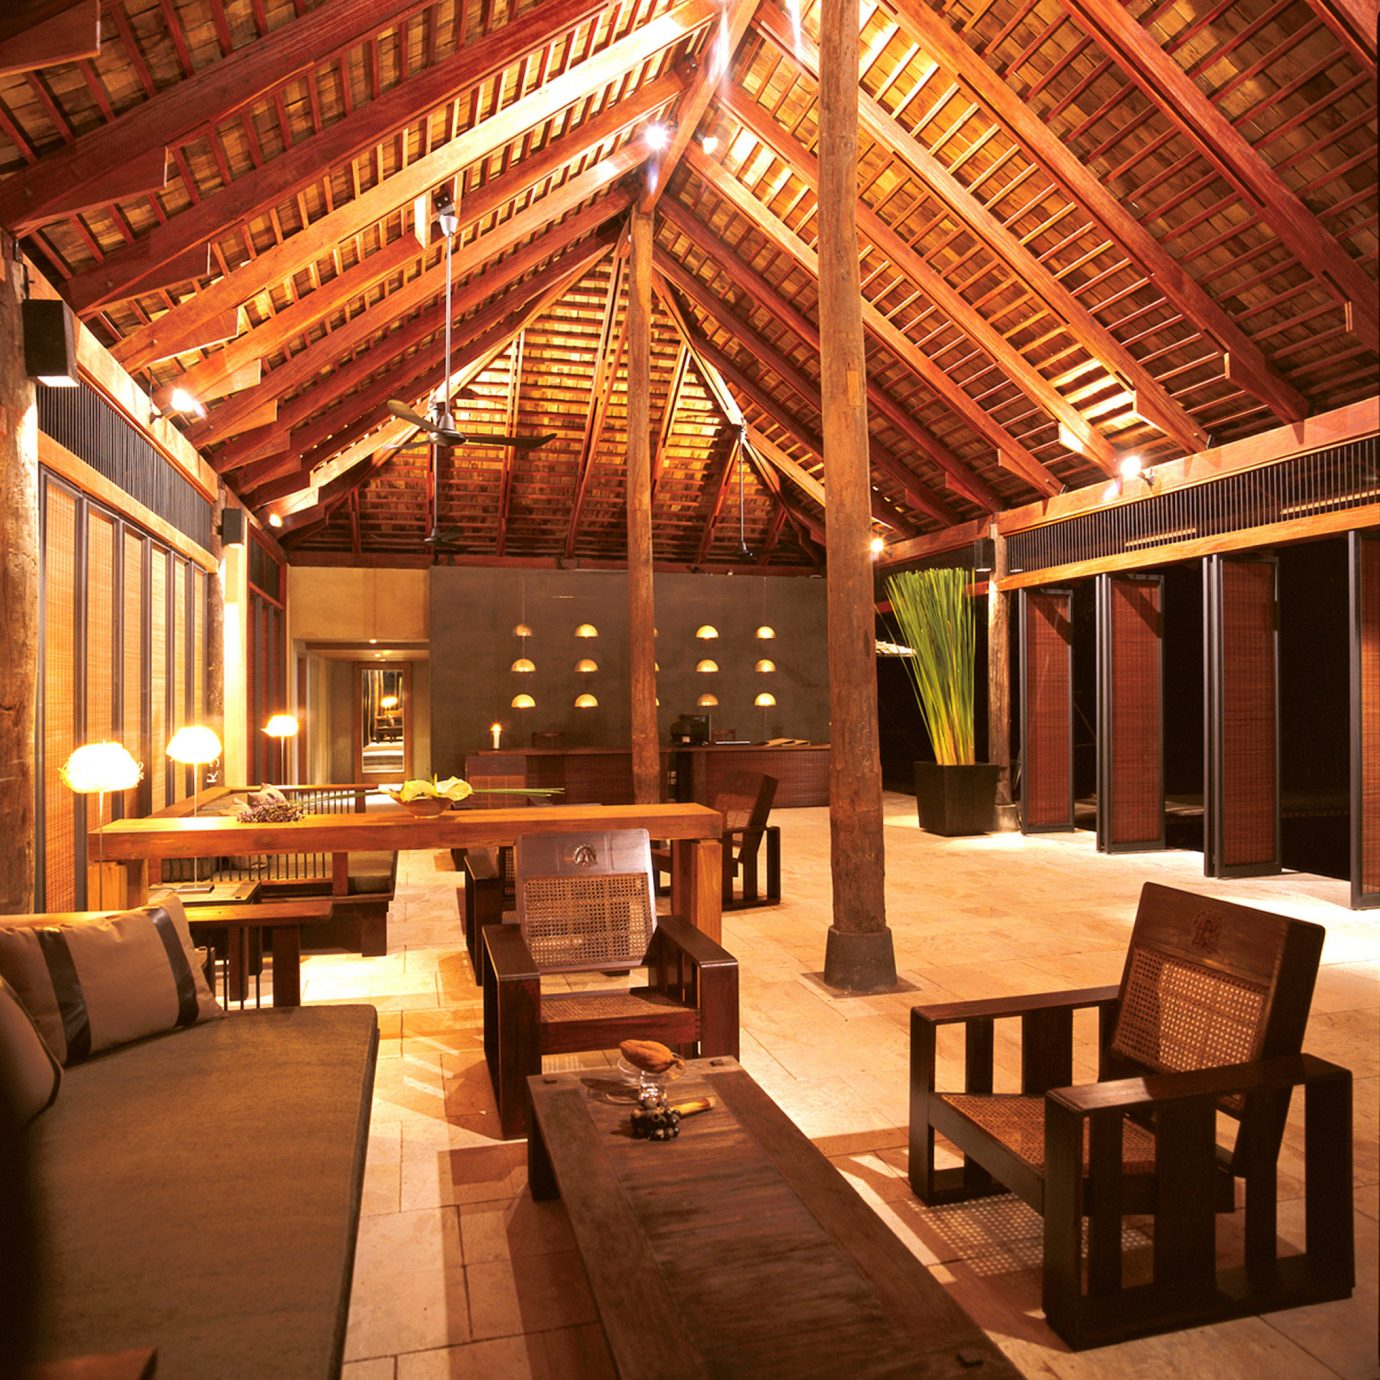 Cultural Eco Elegant Jungle Lobby Lounge Nature Tropical chair building home Resort log cabin living room restaurant outdoor structure